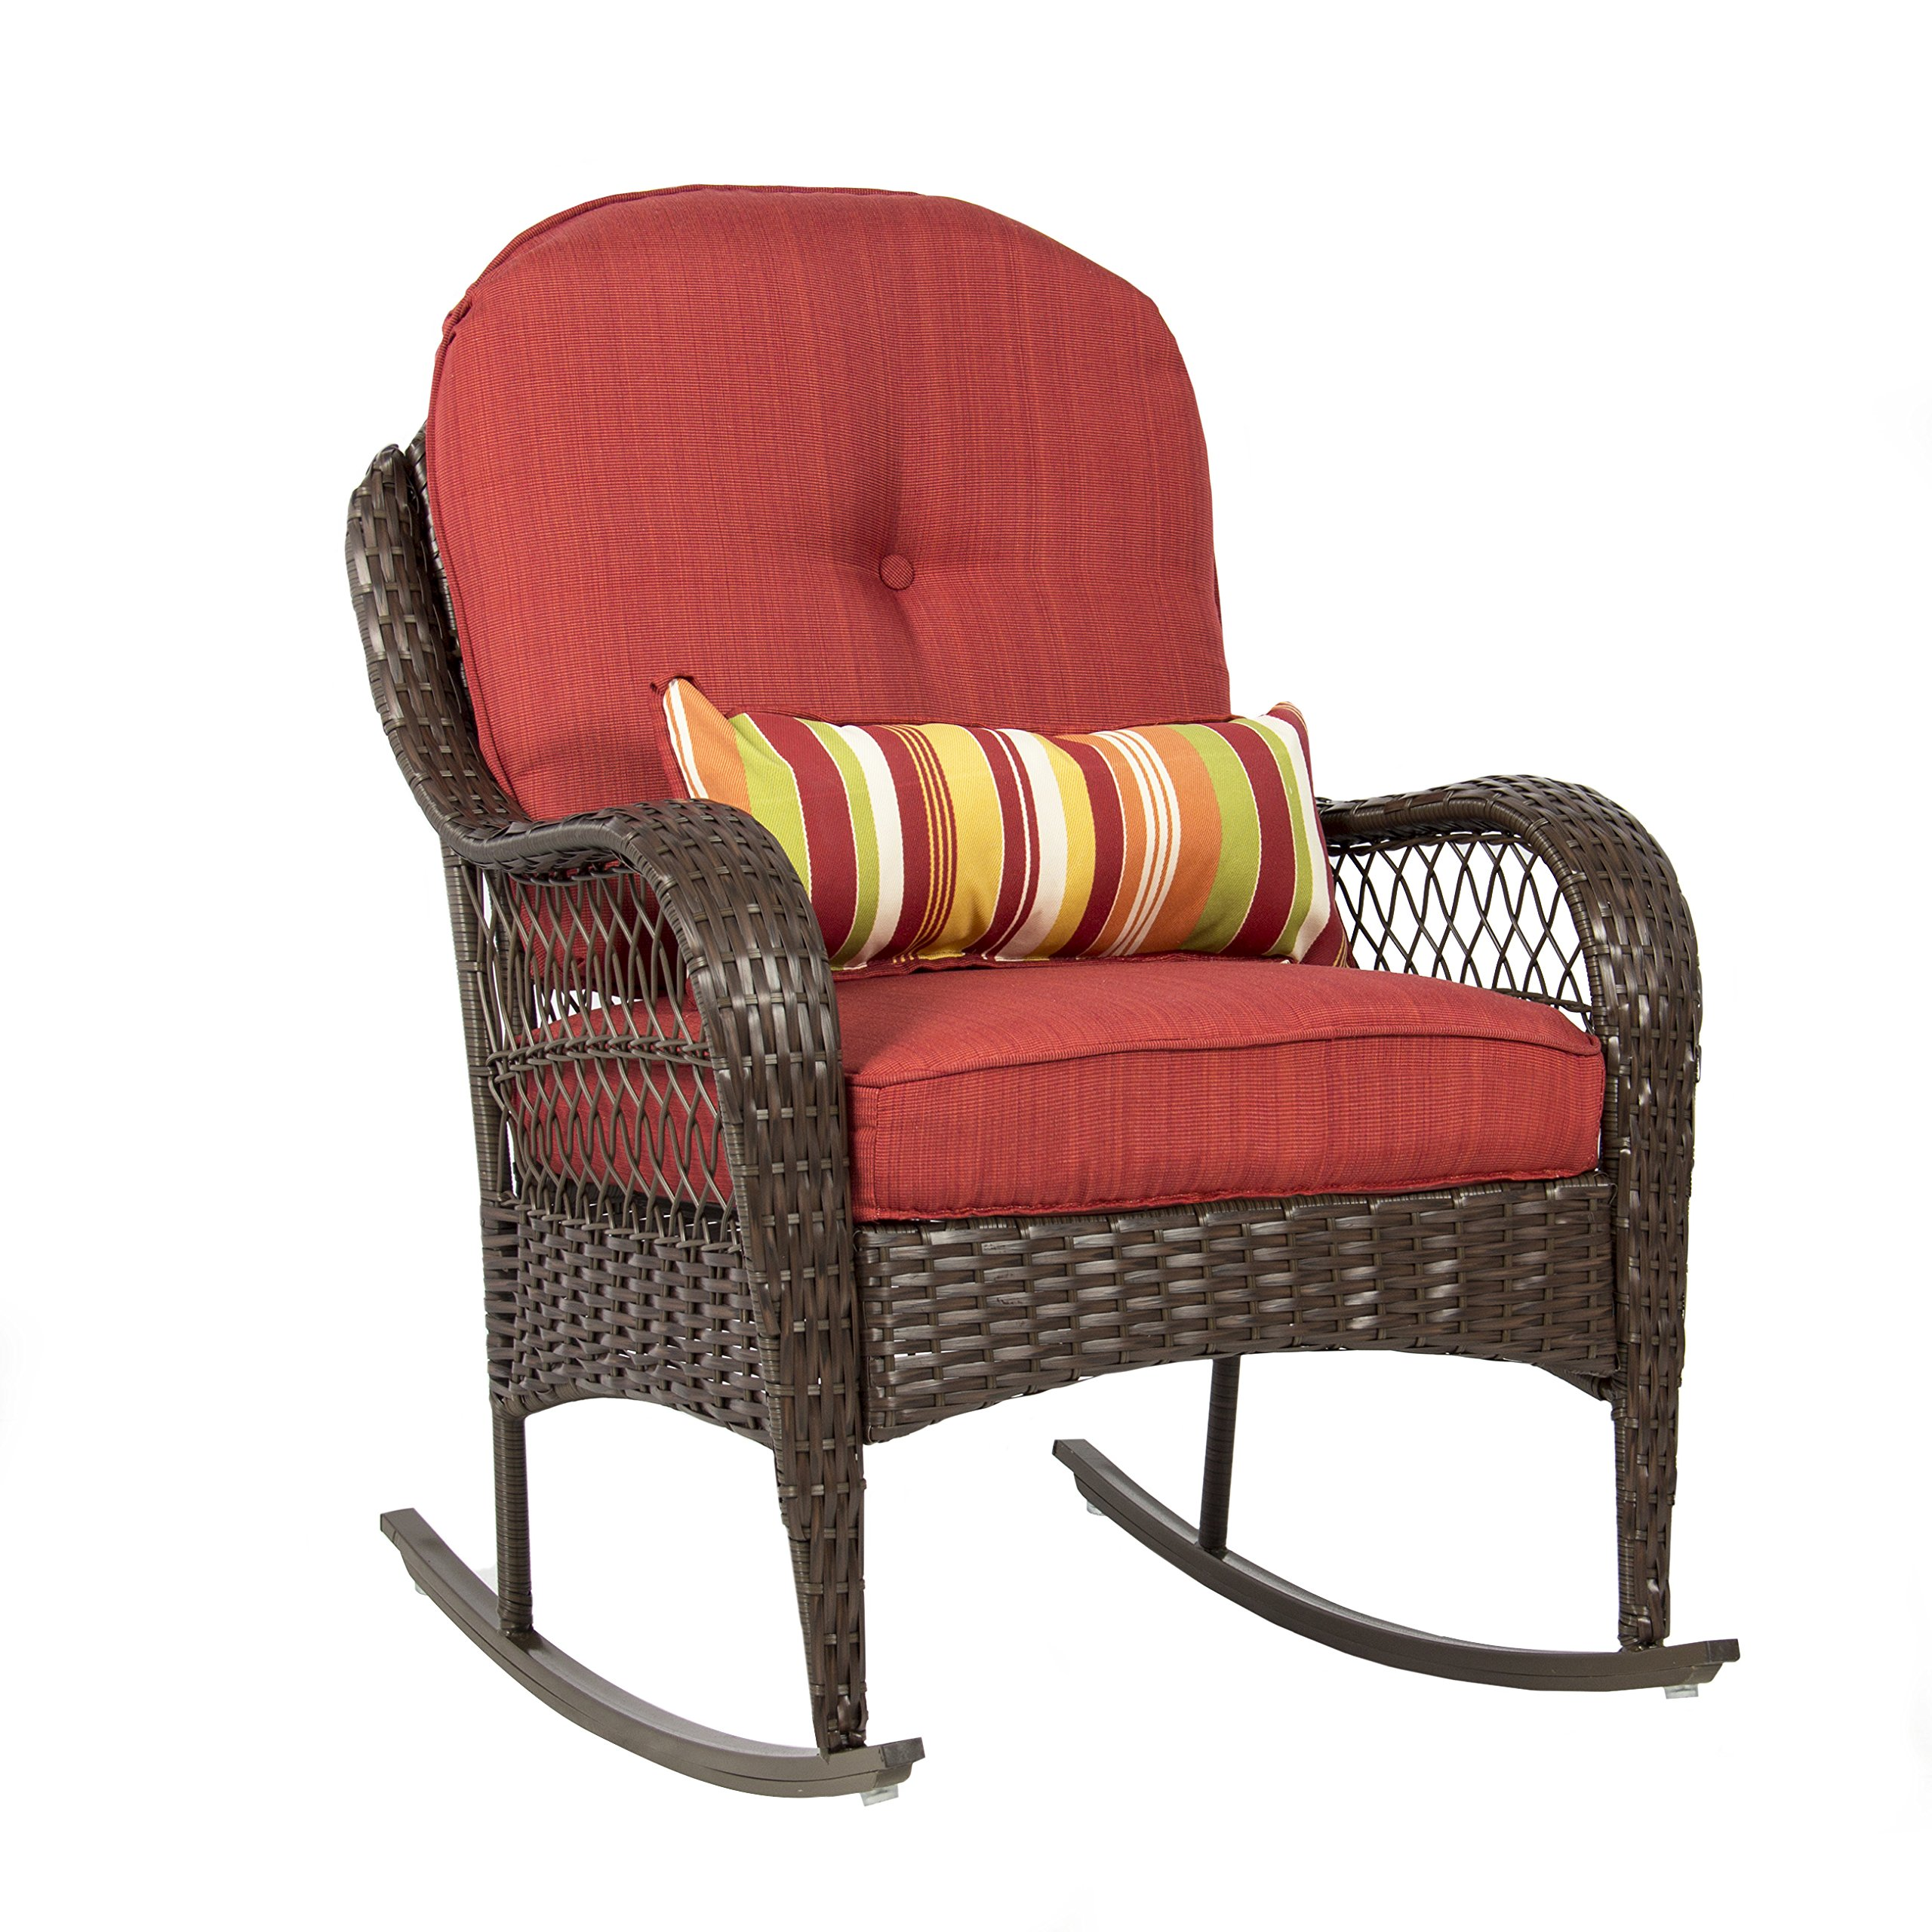 Best ChoiceProducts Wicker Rocking Chair Patio Porch Deck Furniture All Weather Proof with Cushions by Best Choice Products